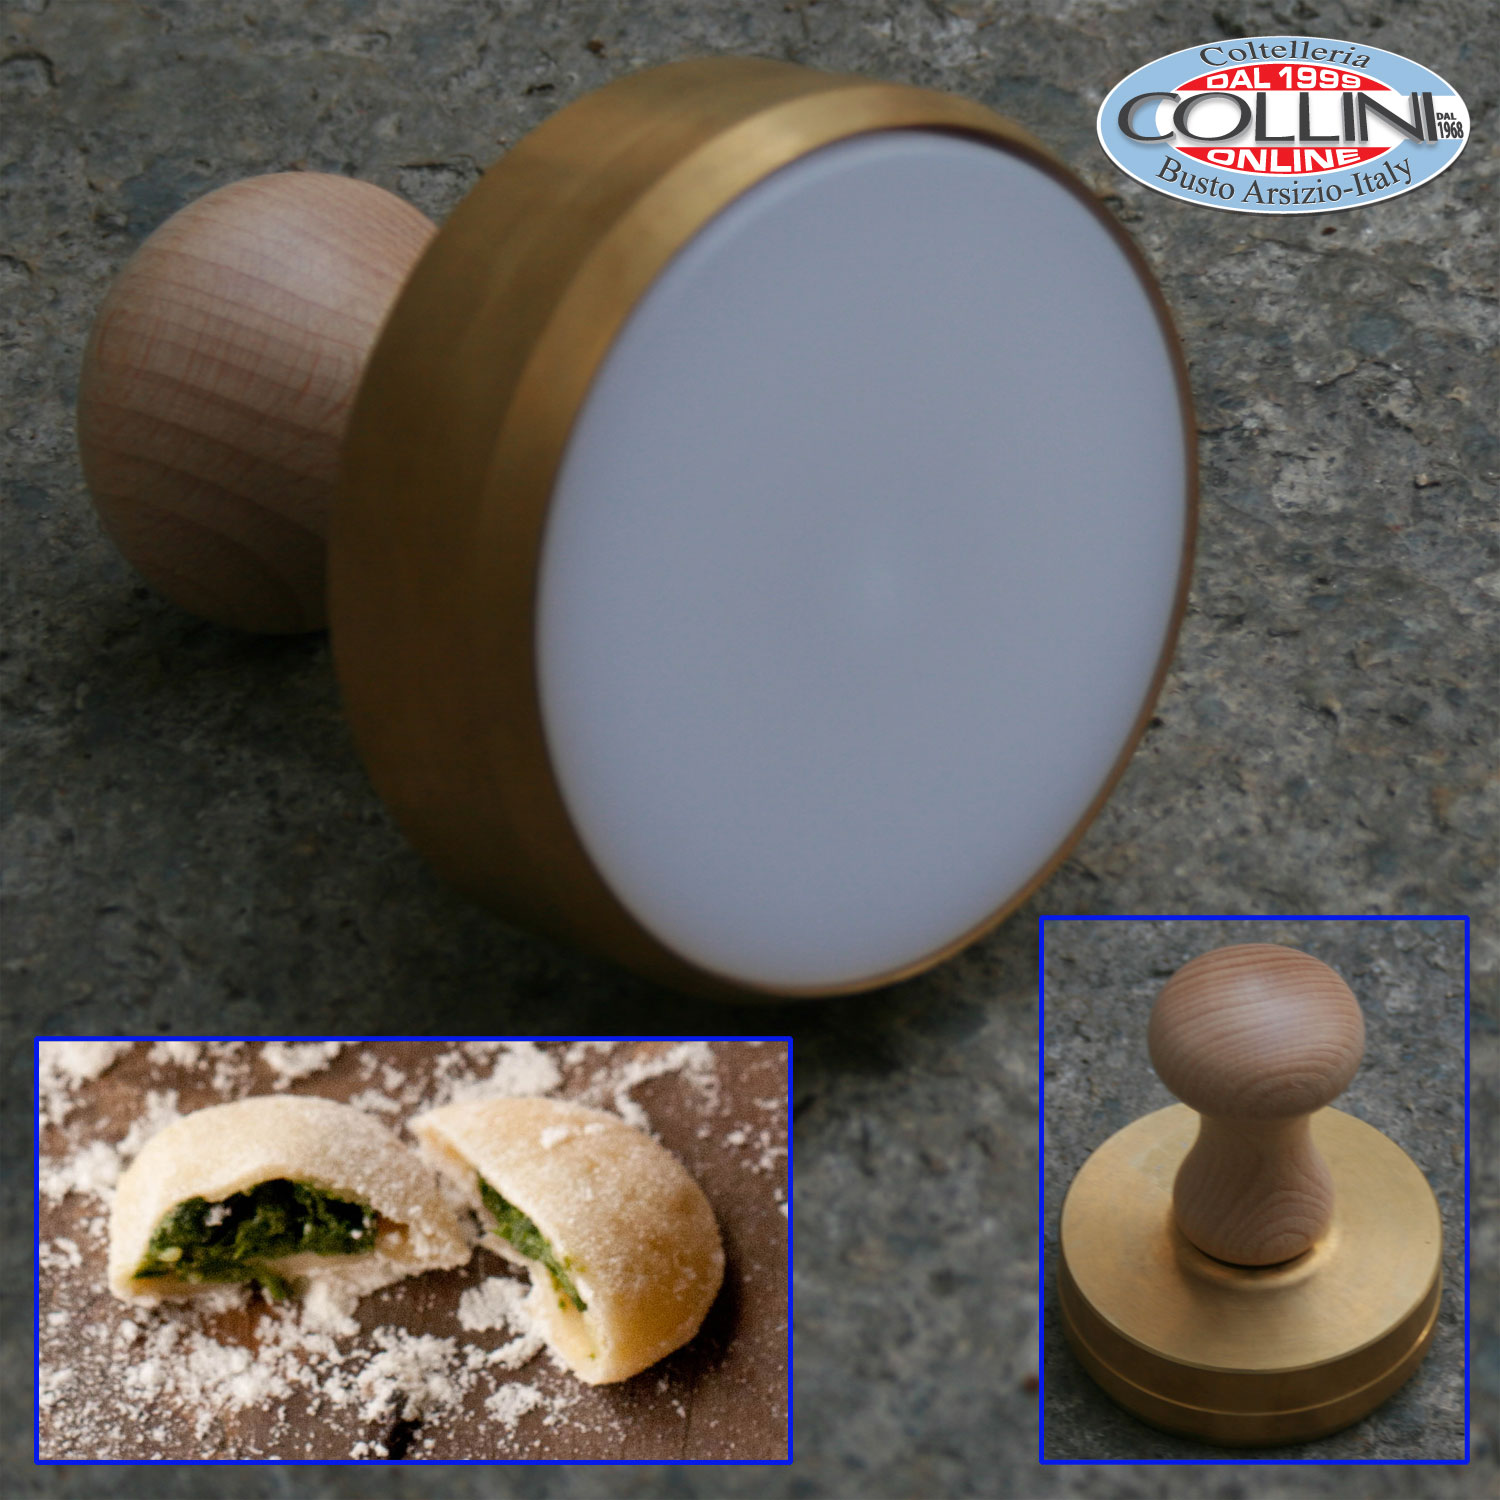 From Musty To Must See Kitchen: Stampo Liscio Per Anolini 8 Cm.- Cucina